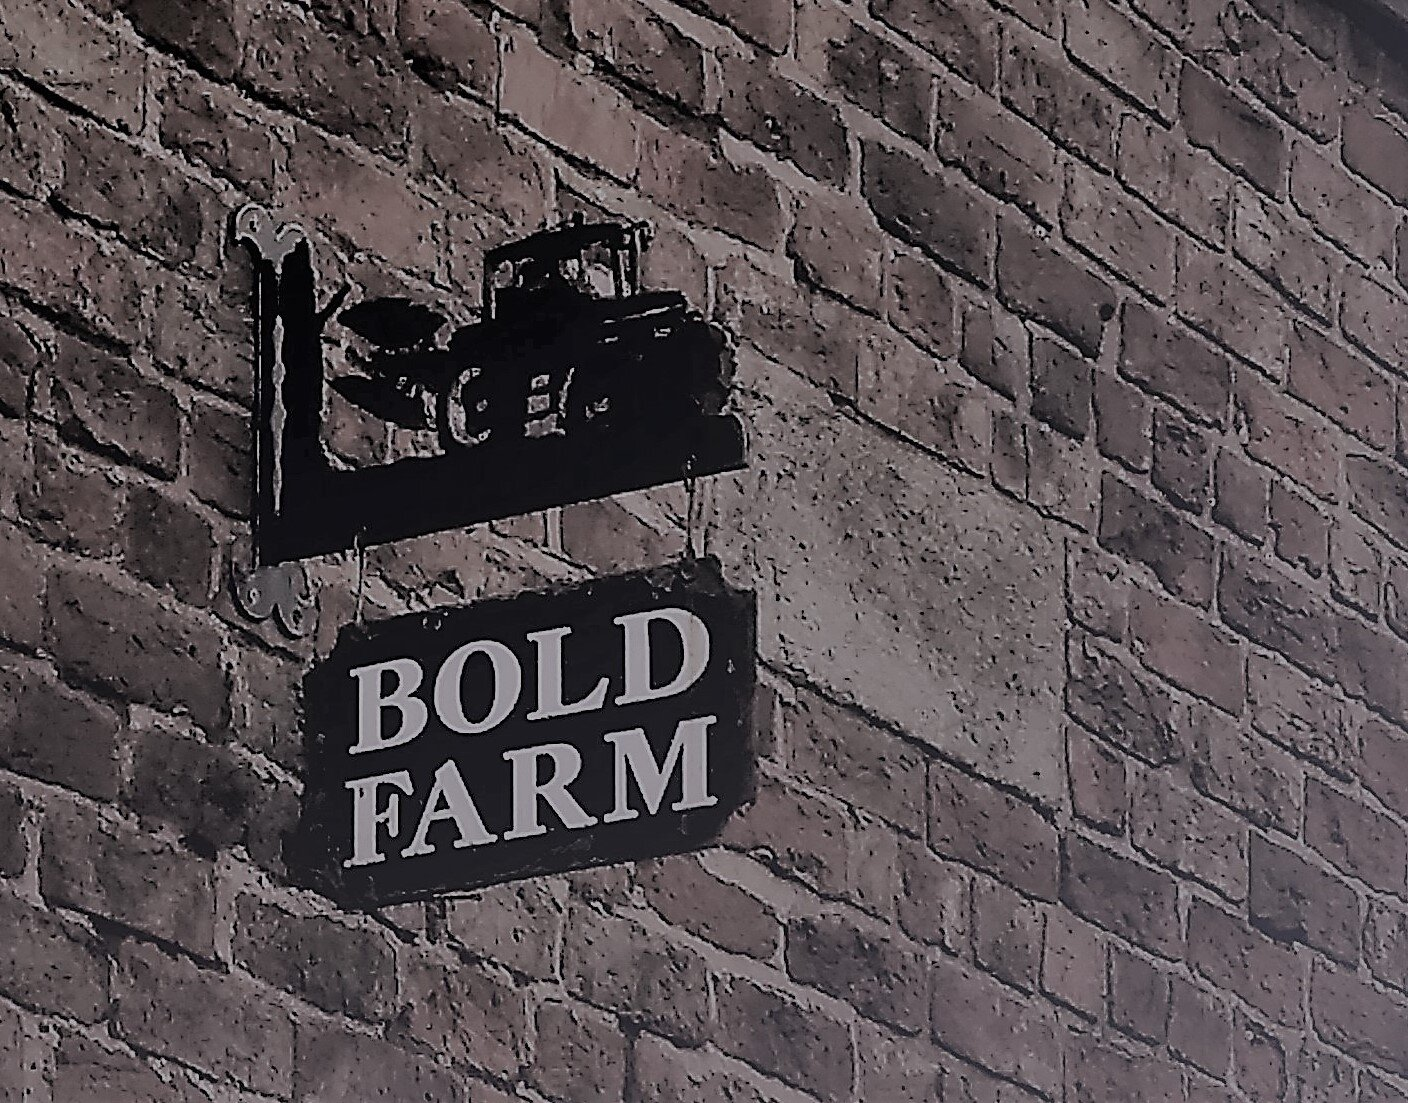 bold farm sign news.jpg